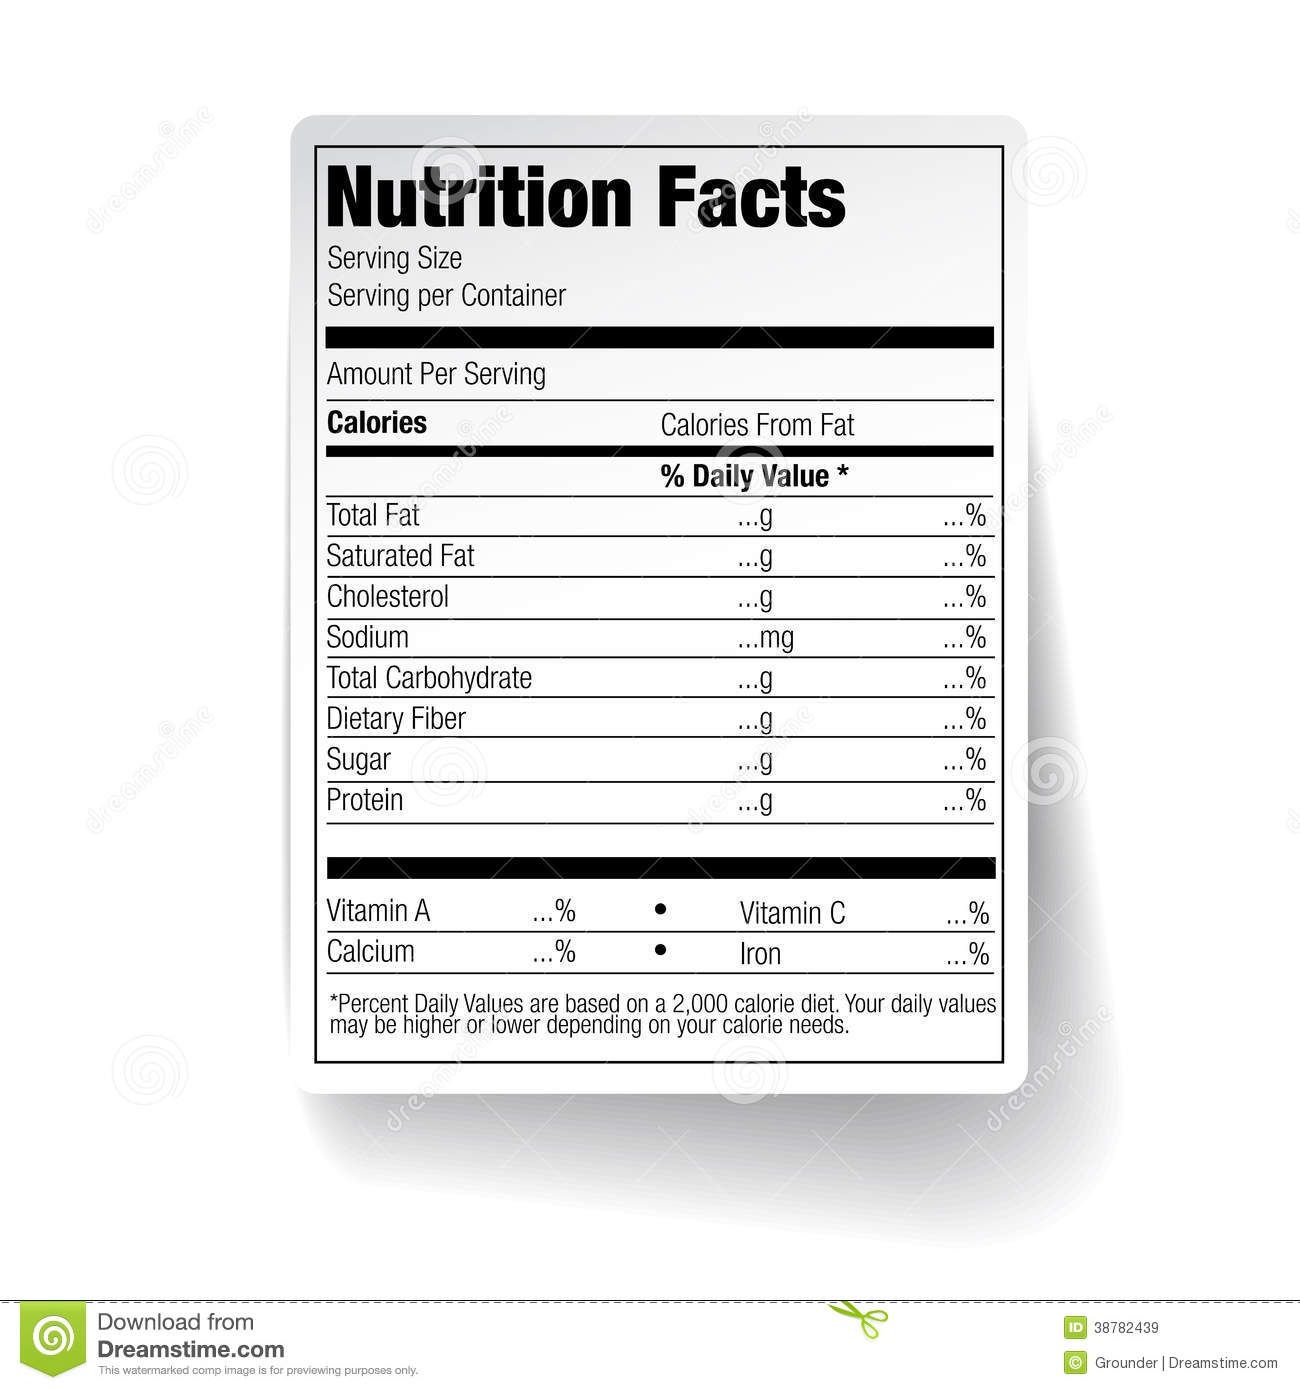 Nutrition label template playbestonlinegames nutrition facts food label stock vector image 38782439 pronofoot35fo Images